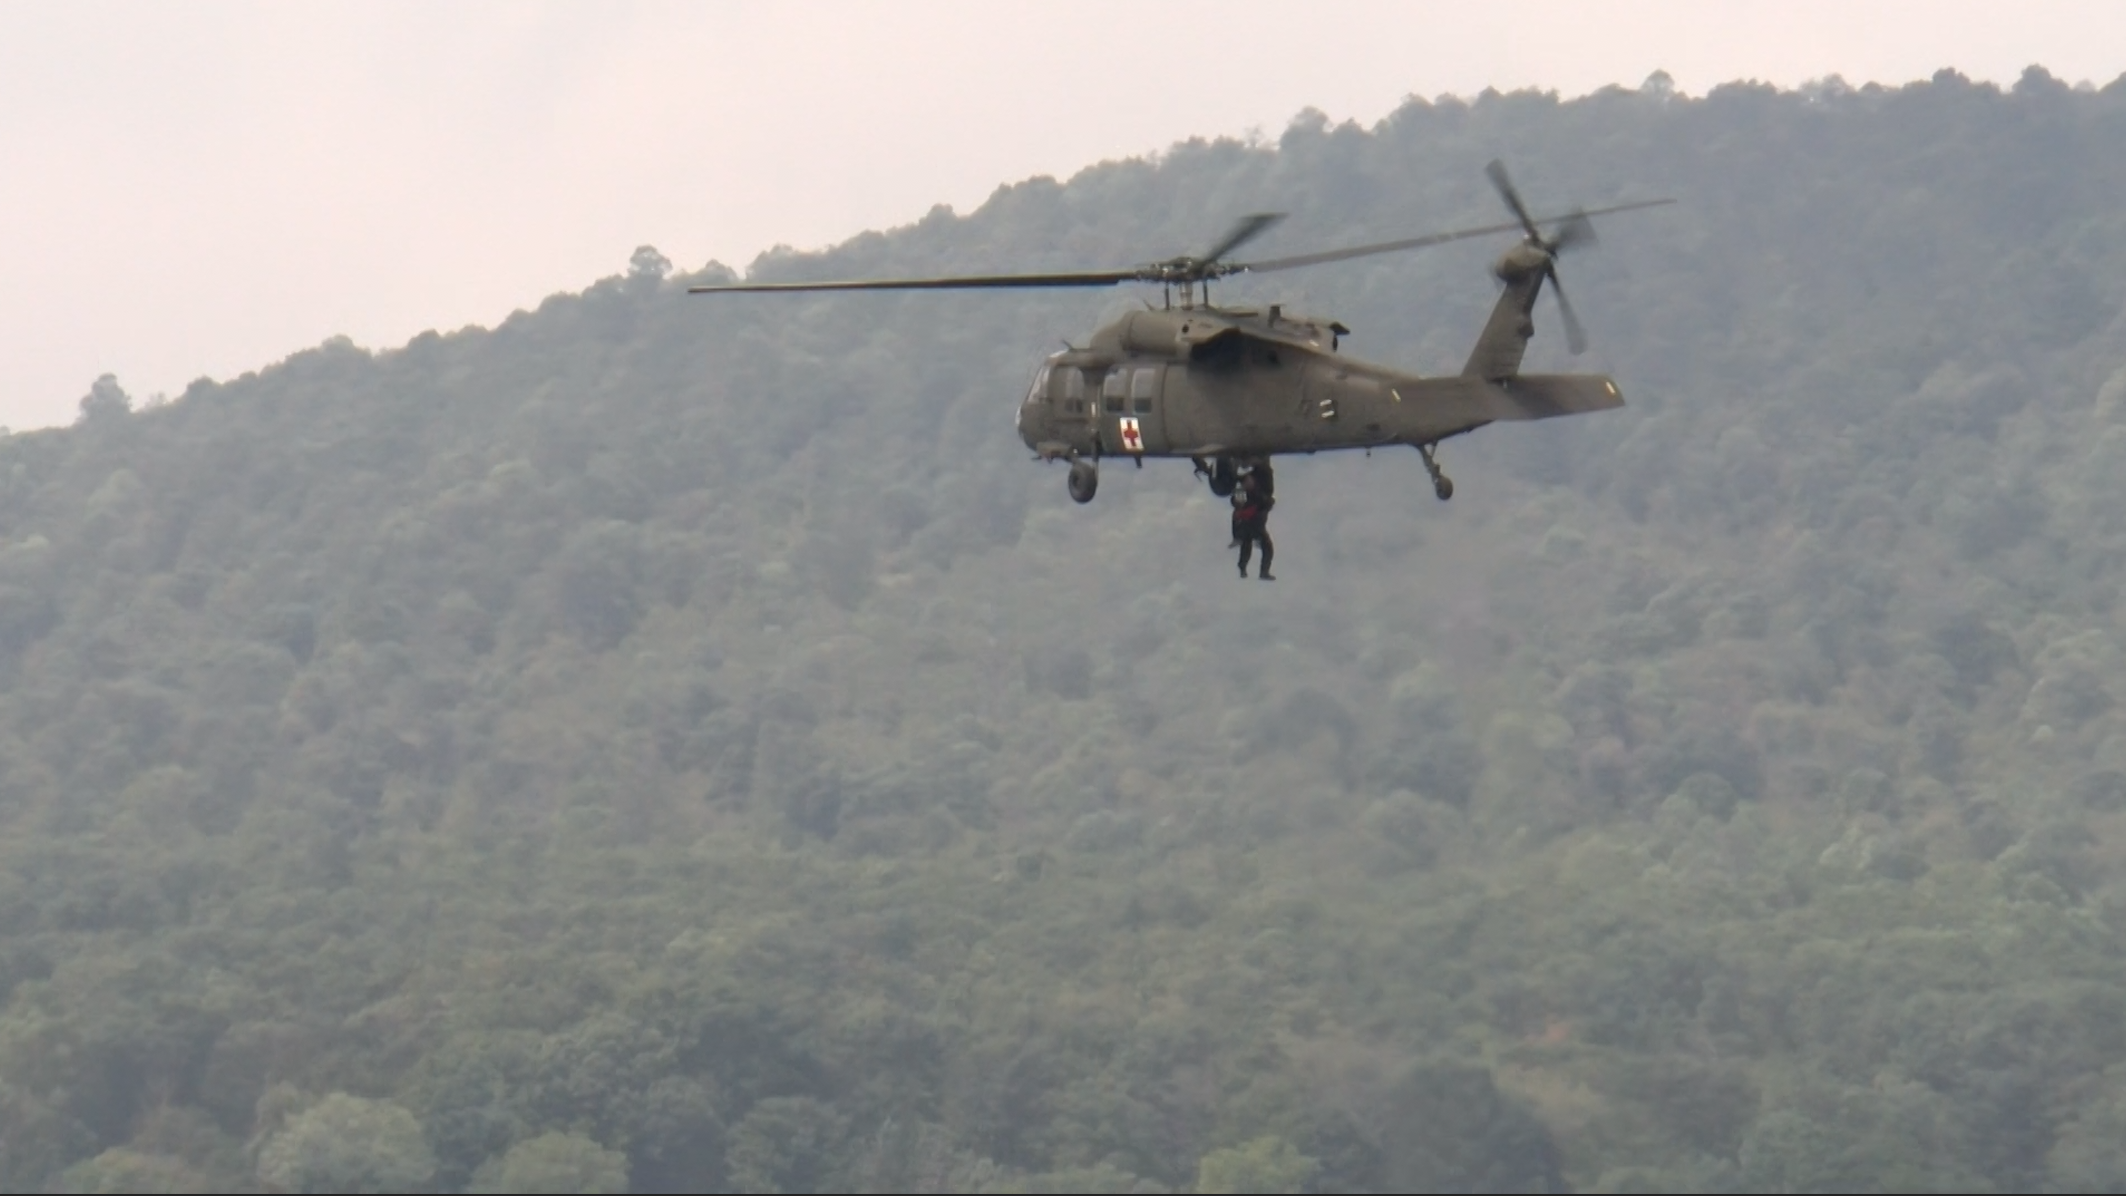 Helicopters, water rescue teams shine in rescue demo over Susquehanna